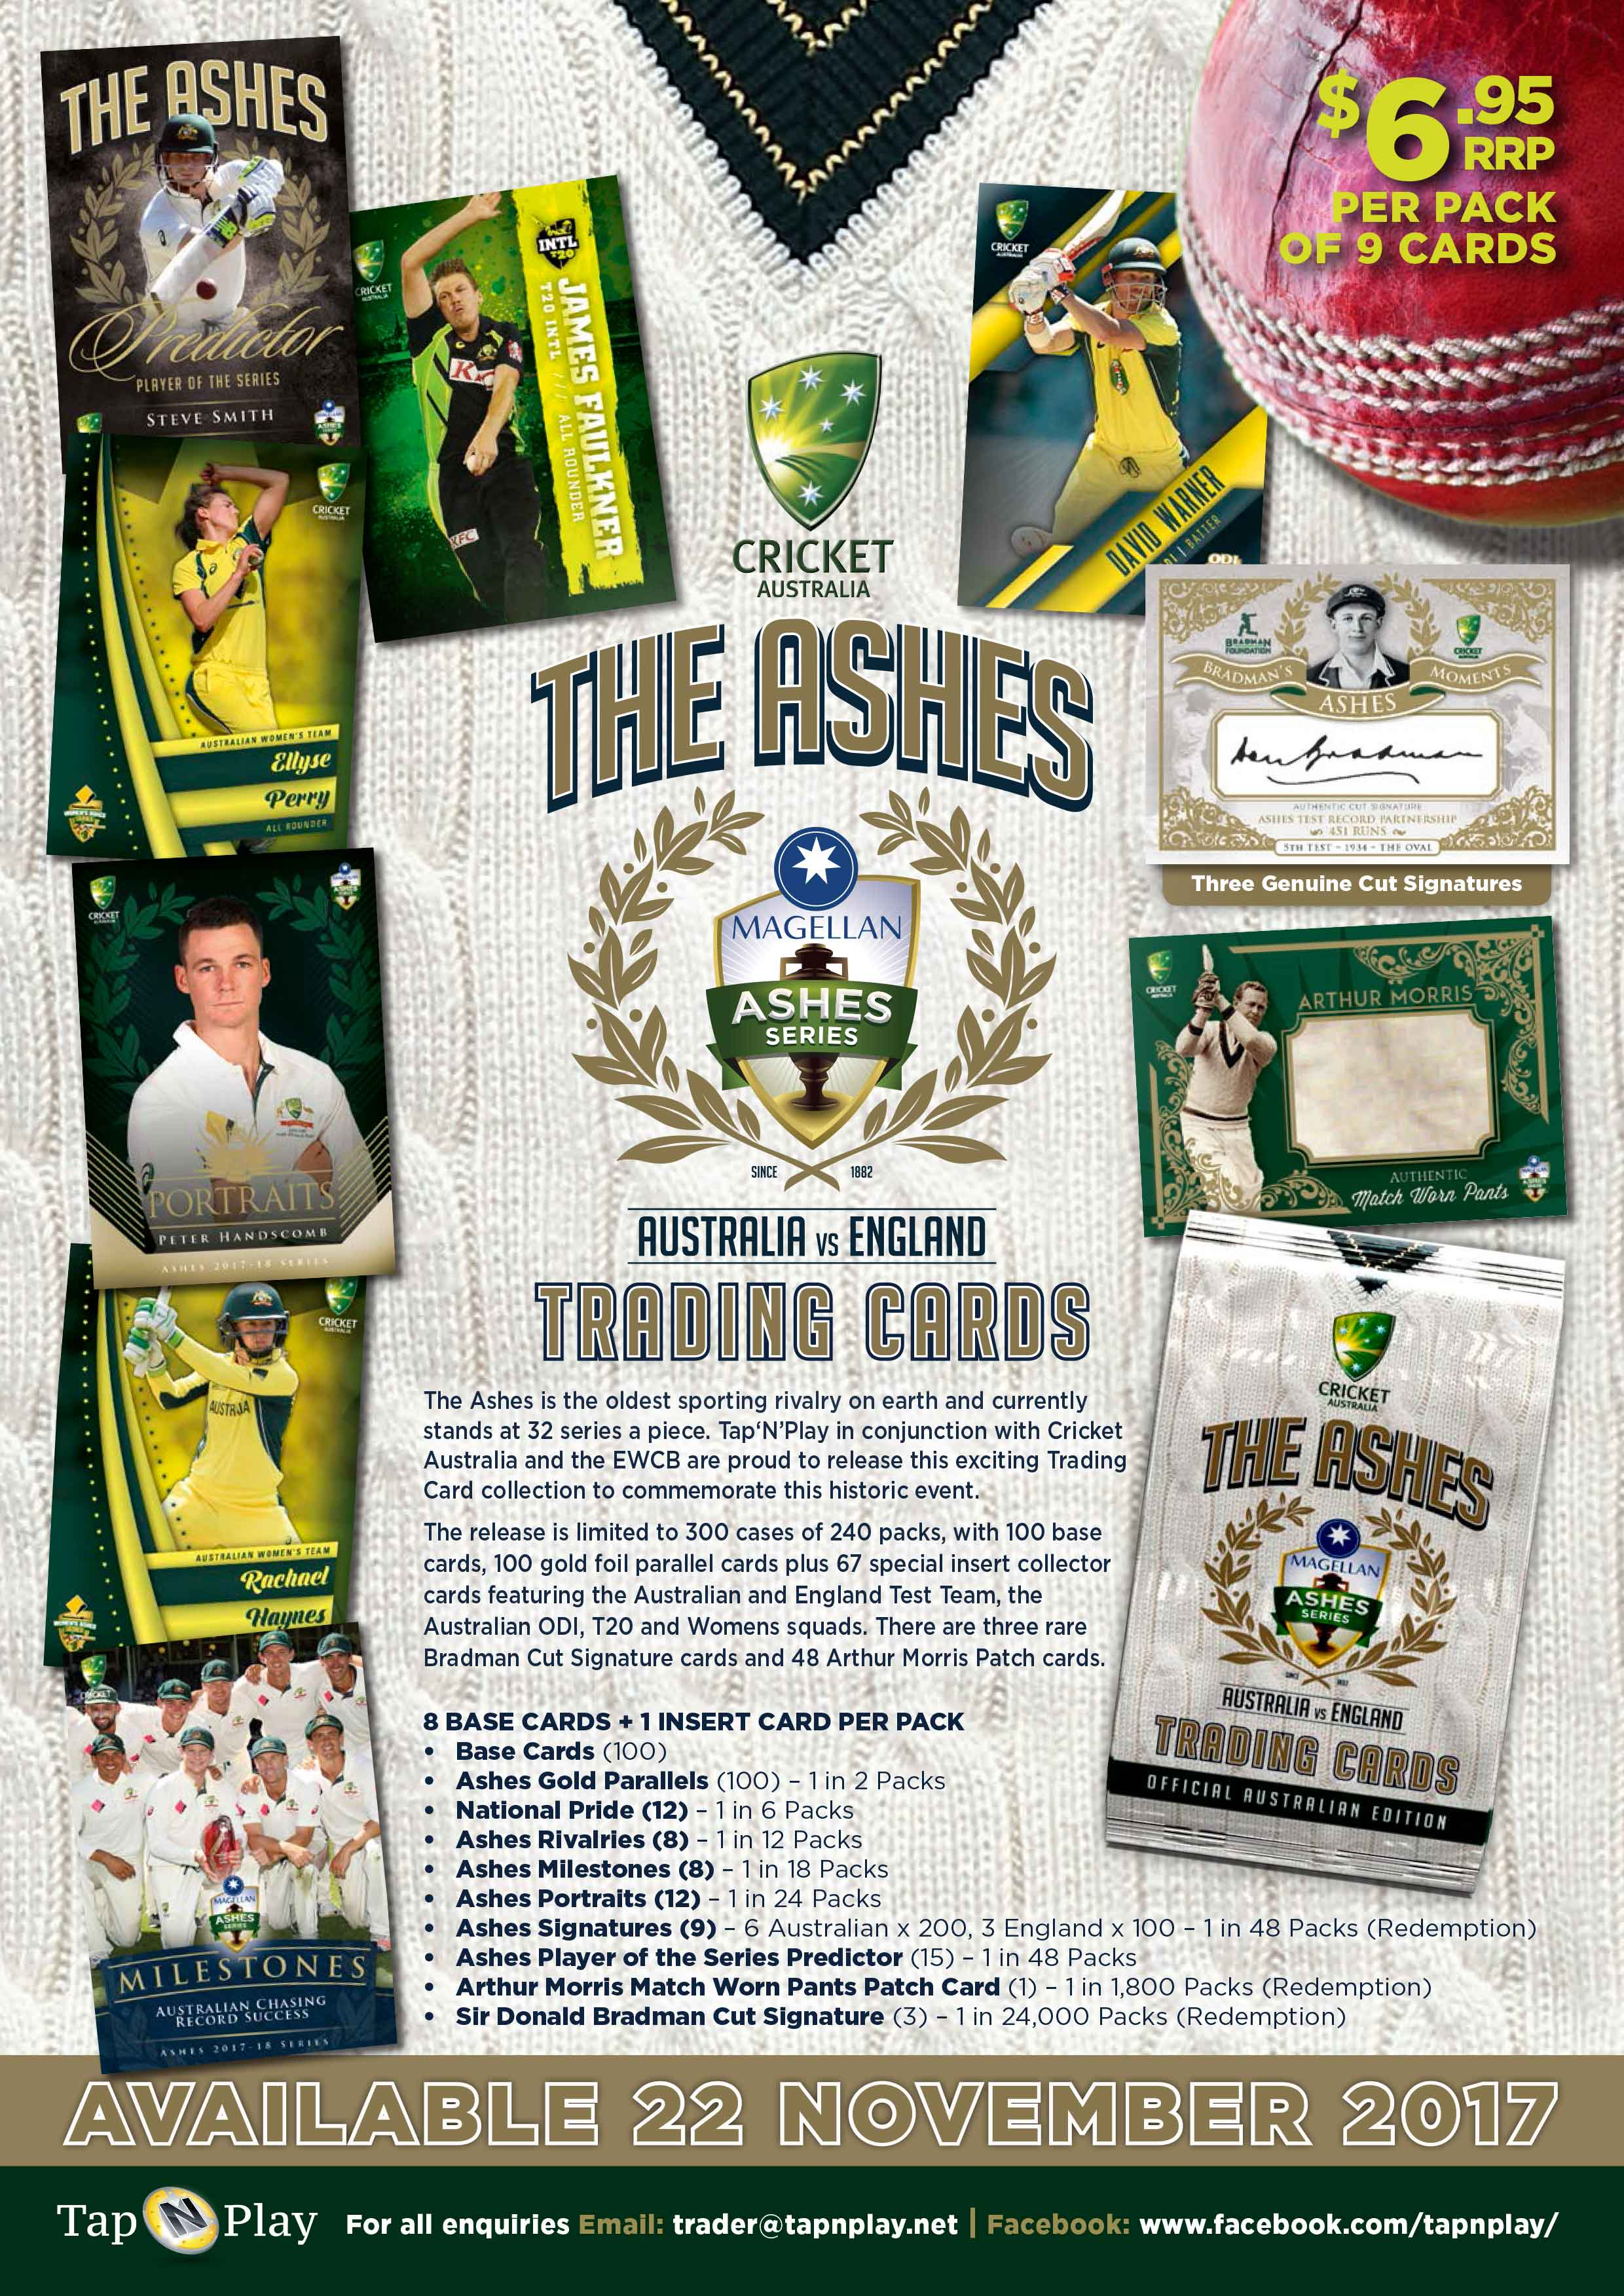 Ashes 2017/18 Sales Flyer